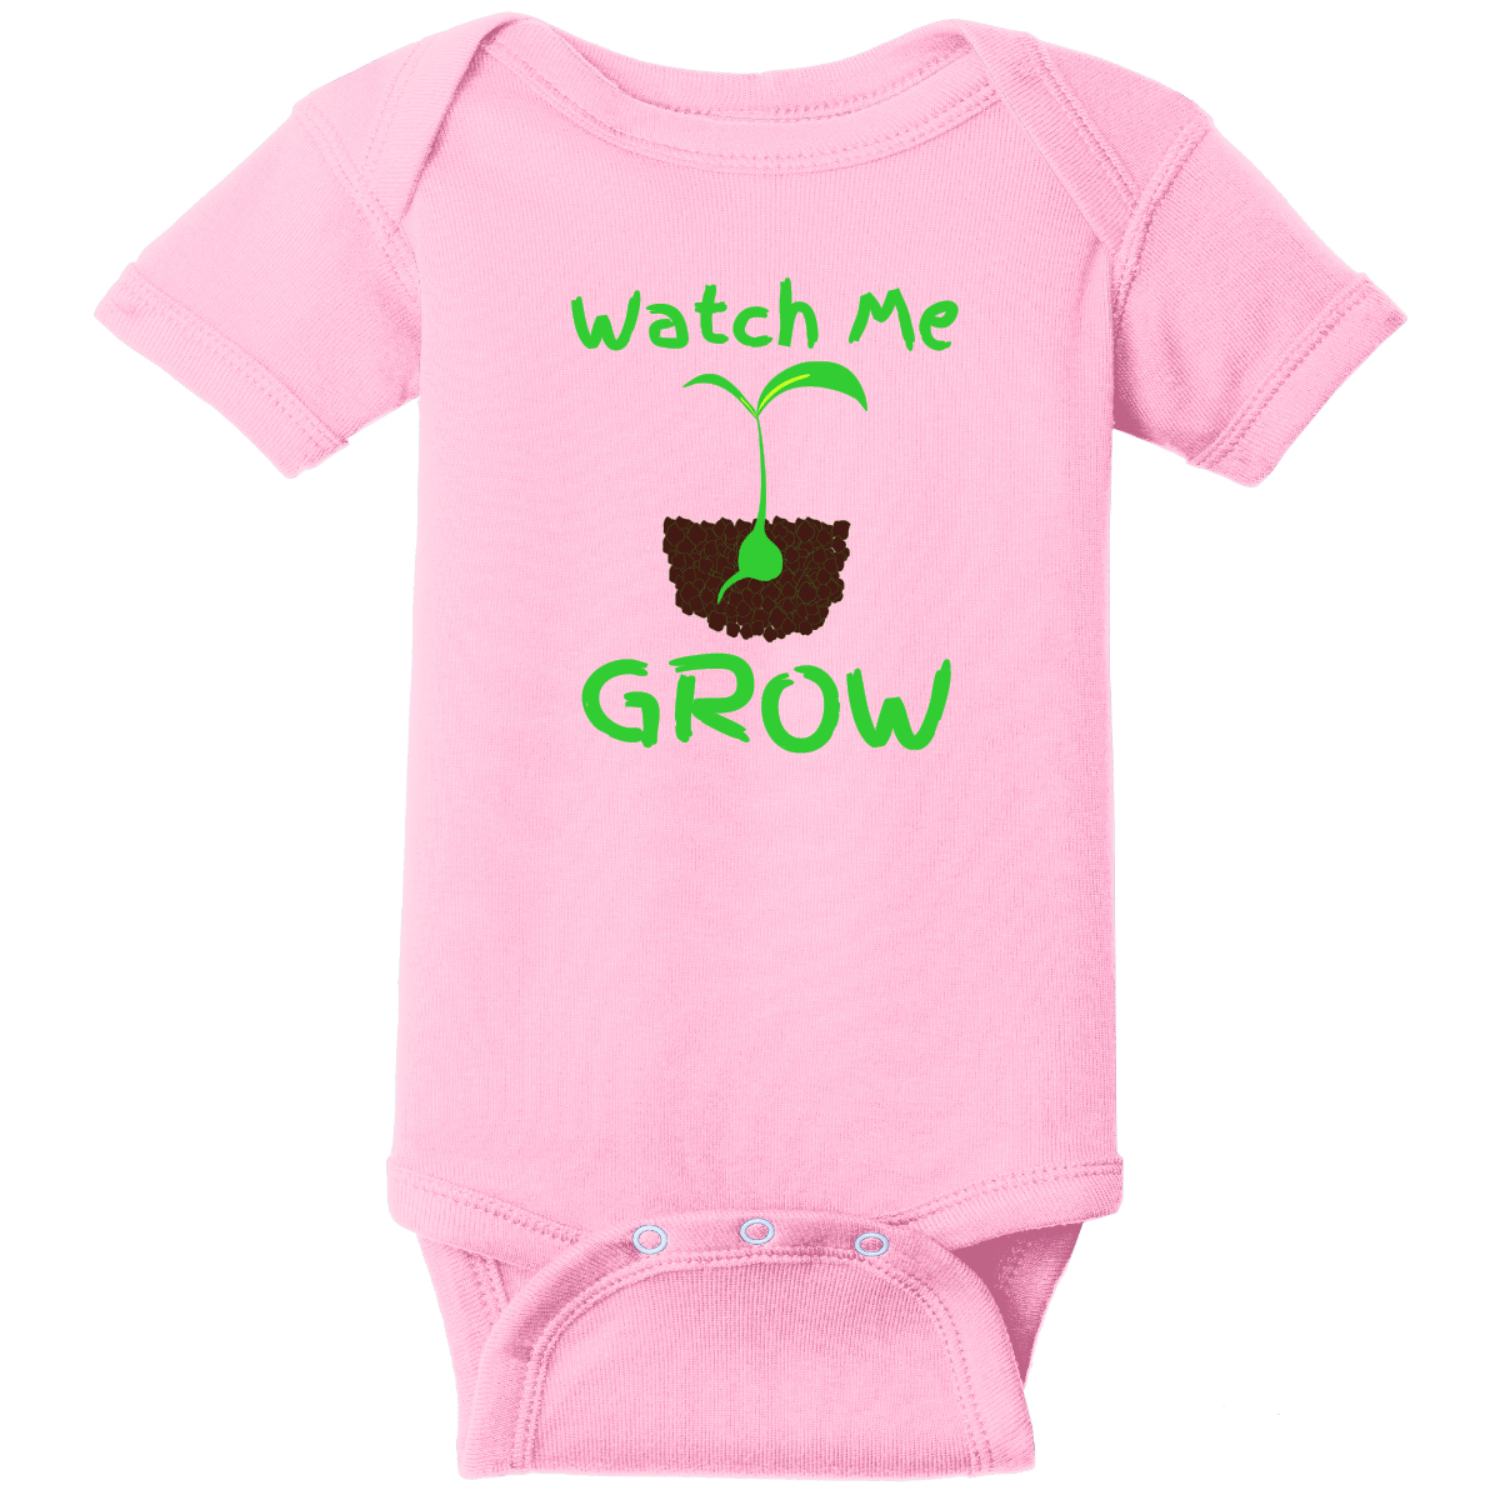 Watch Me Grow Infant Creeper Pink Rabbit Skins Infant Short Sleeve Infant Rib Bodysuit RS4400